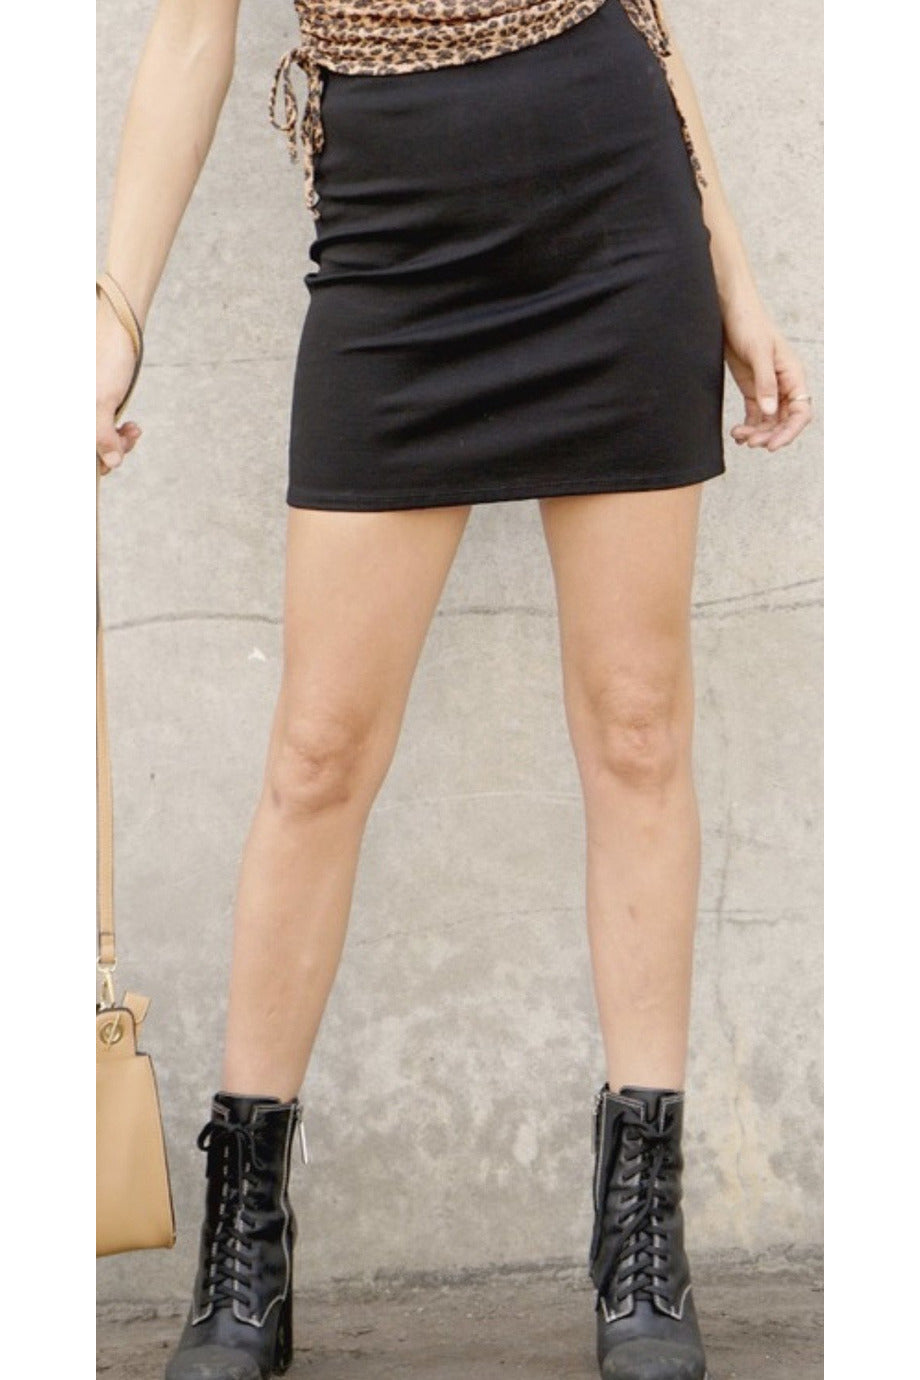 Mia Mini Skirt in Black $34